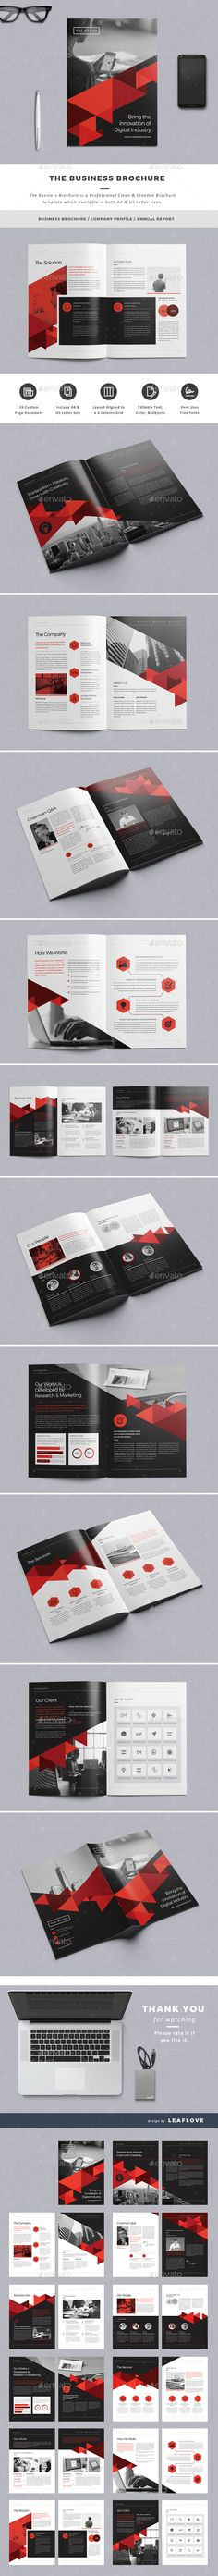 The Business Brochure Template InDesign INDD #design Download: http://graphicriver.net/item/the-business-brochure/14474584?ref=ksioks